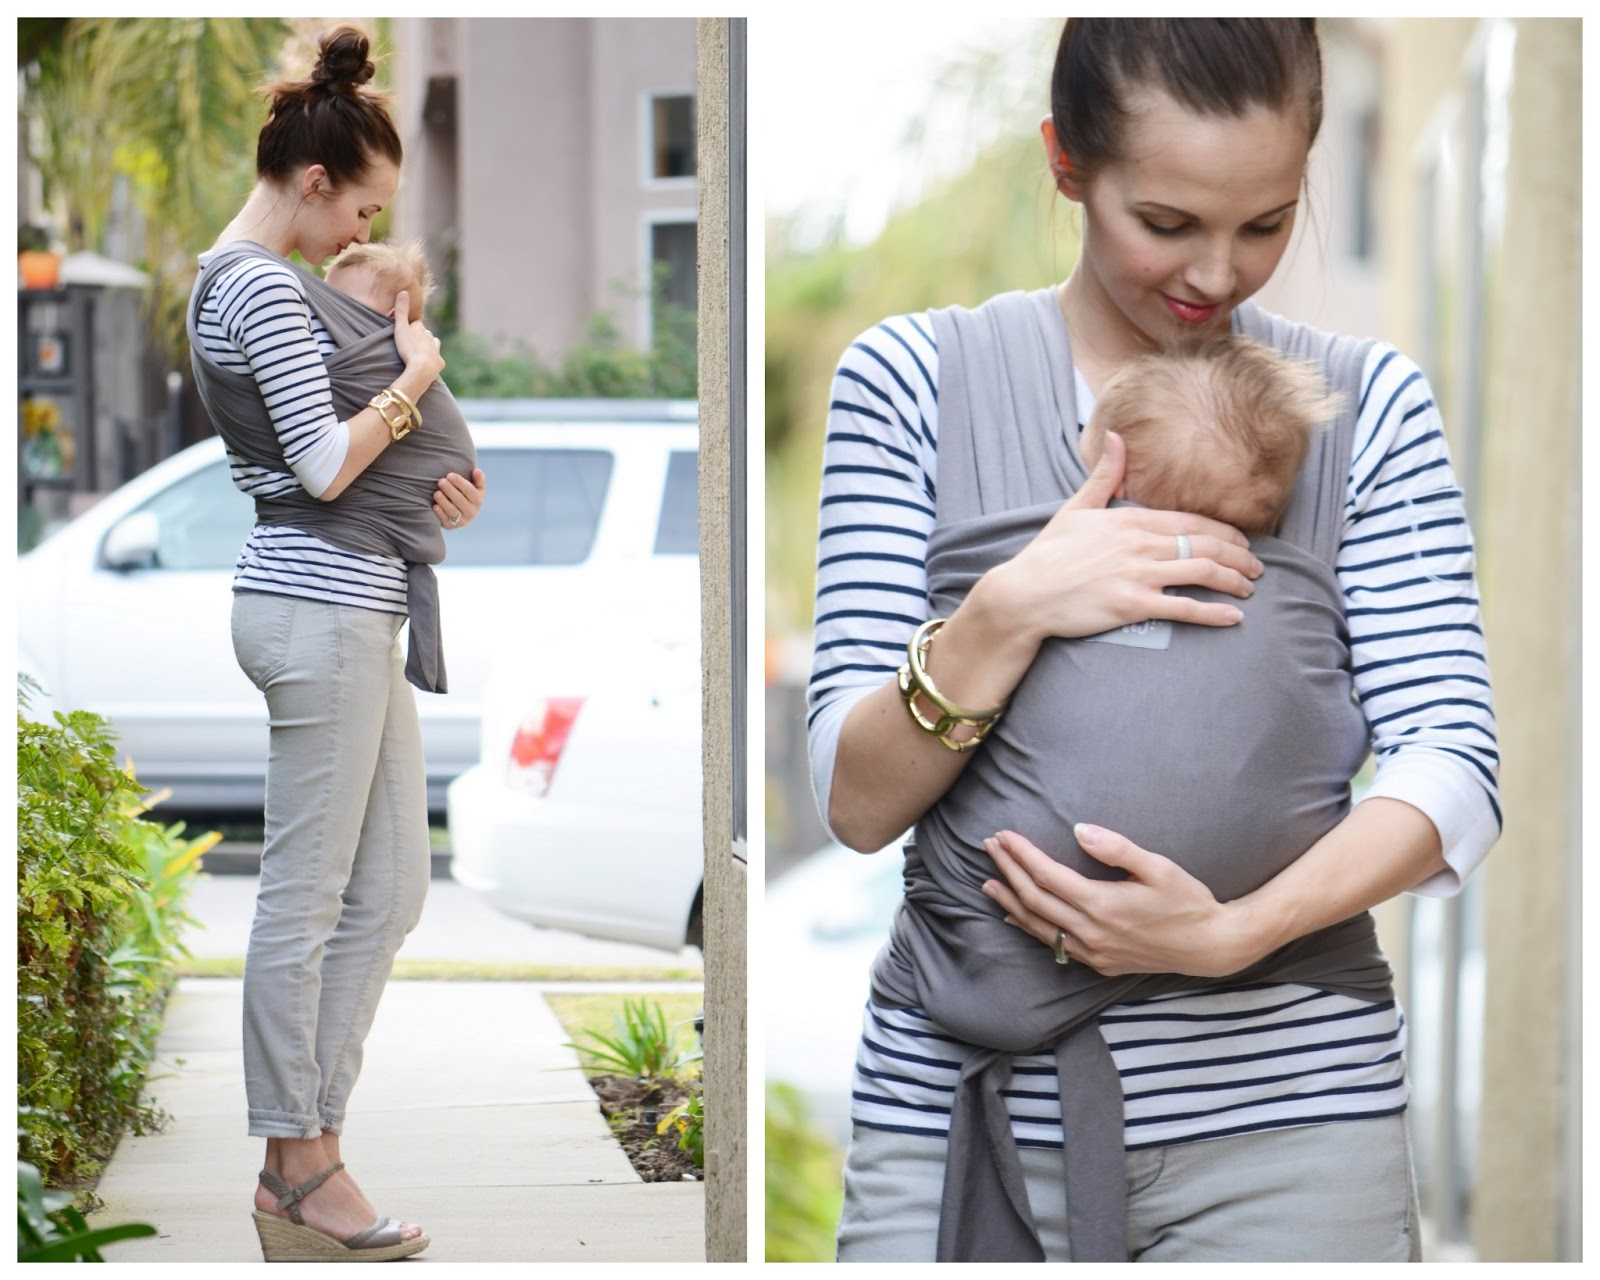 b98dd6525ae jeans  old navy (similar)    tee  sam s club (similar)    wedges  old navy  (similar)    baby wrap  happy baby c o